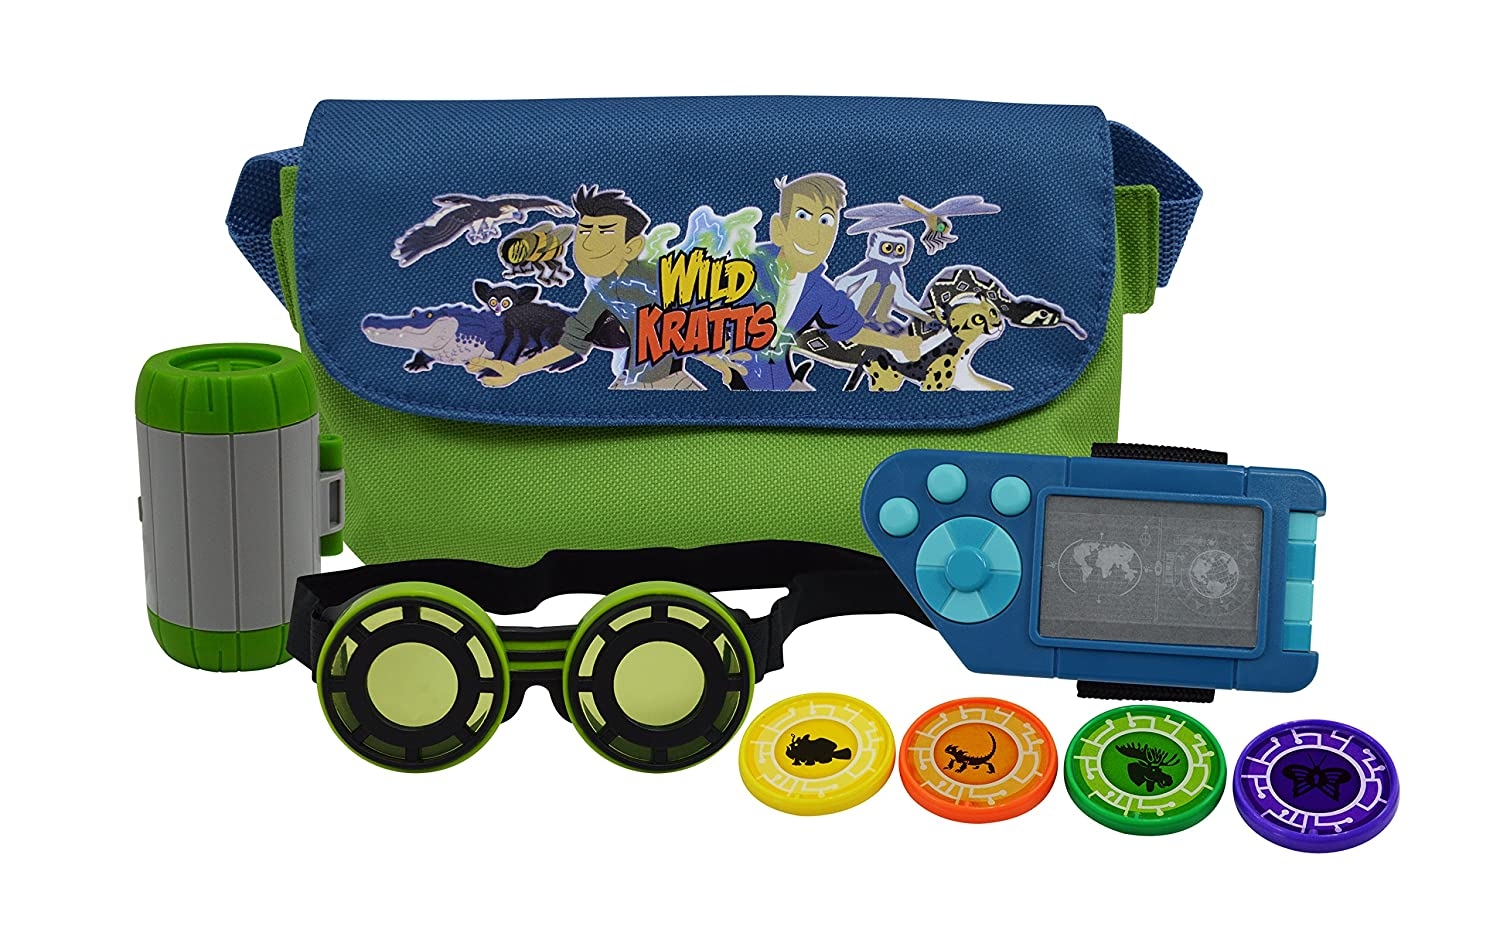 Wild Kratts Adventure Set - Includes Goggles, Creature Pod, Power Discs and More - For Halloween Costumes and Dress Up Play - 3+